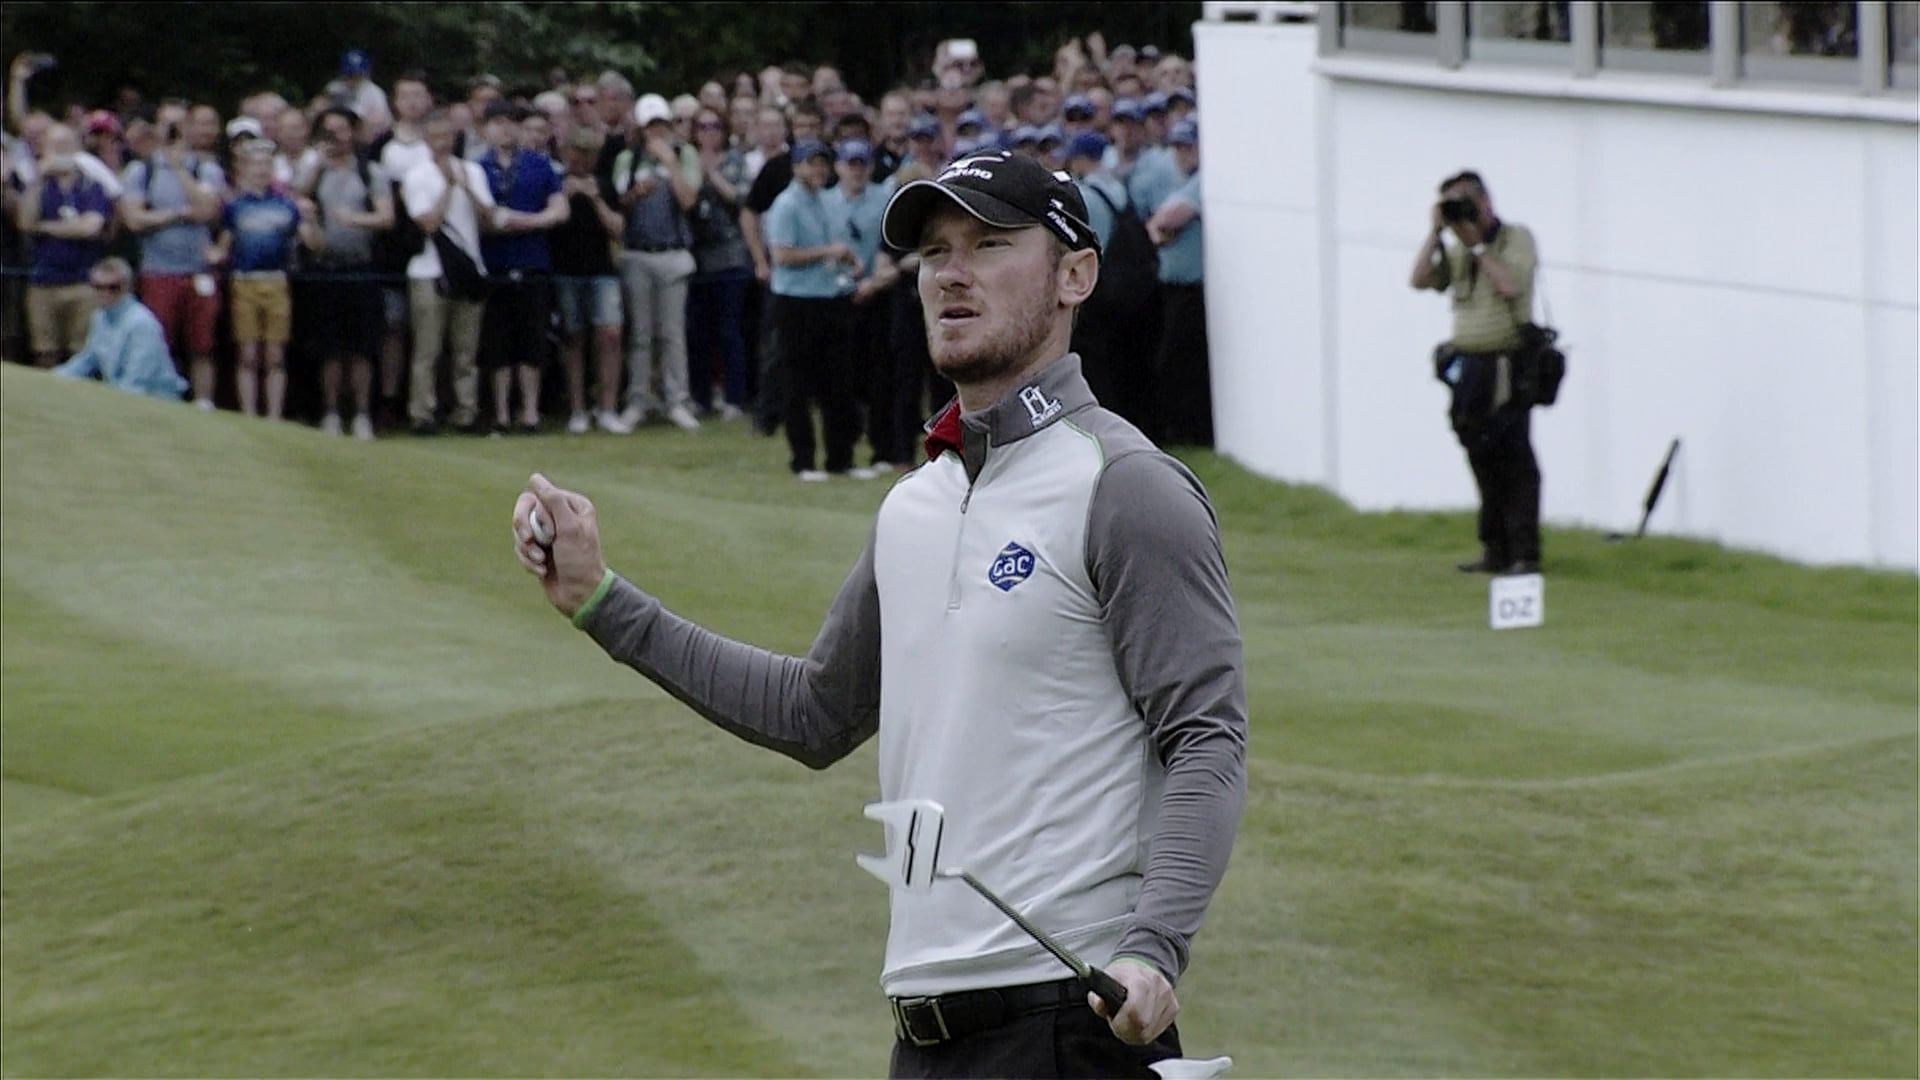 Chris Wood Looks Back On Bmw Pga Win At Wentworth Golf